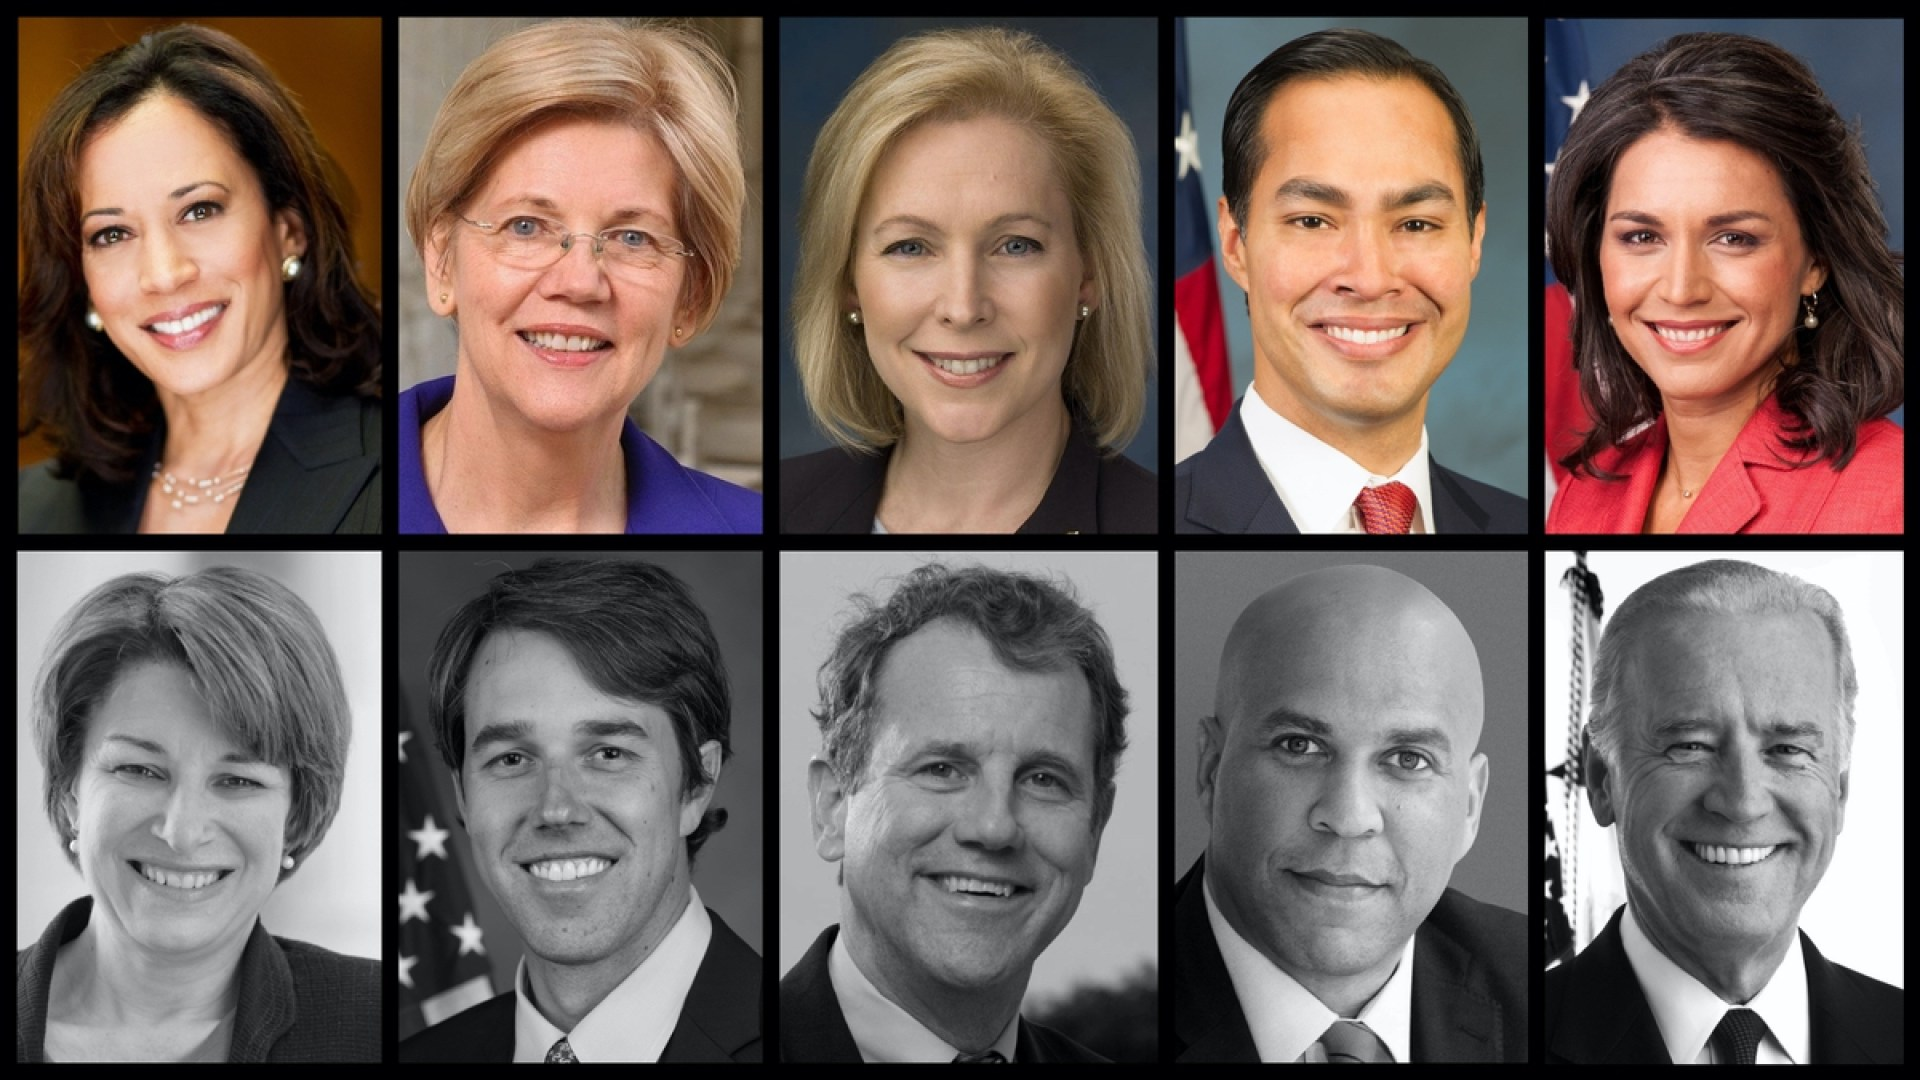 Top row announced candidates: Kamala Harris, Elizabeth Warren, Kirsten Gillibrand, Julian Castro, Tulsi Gabbard. Bottom row unannounced: Amy Klobuchar, Beto O'Rourke, Sherrod Brown, Cory Booker, and Joe Biden (Official Government Photos)